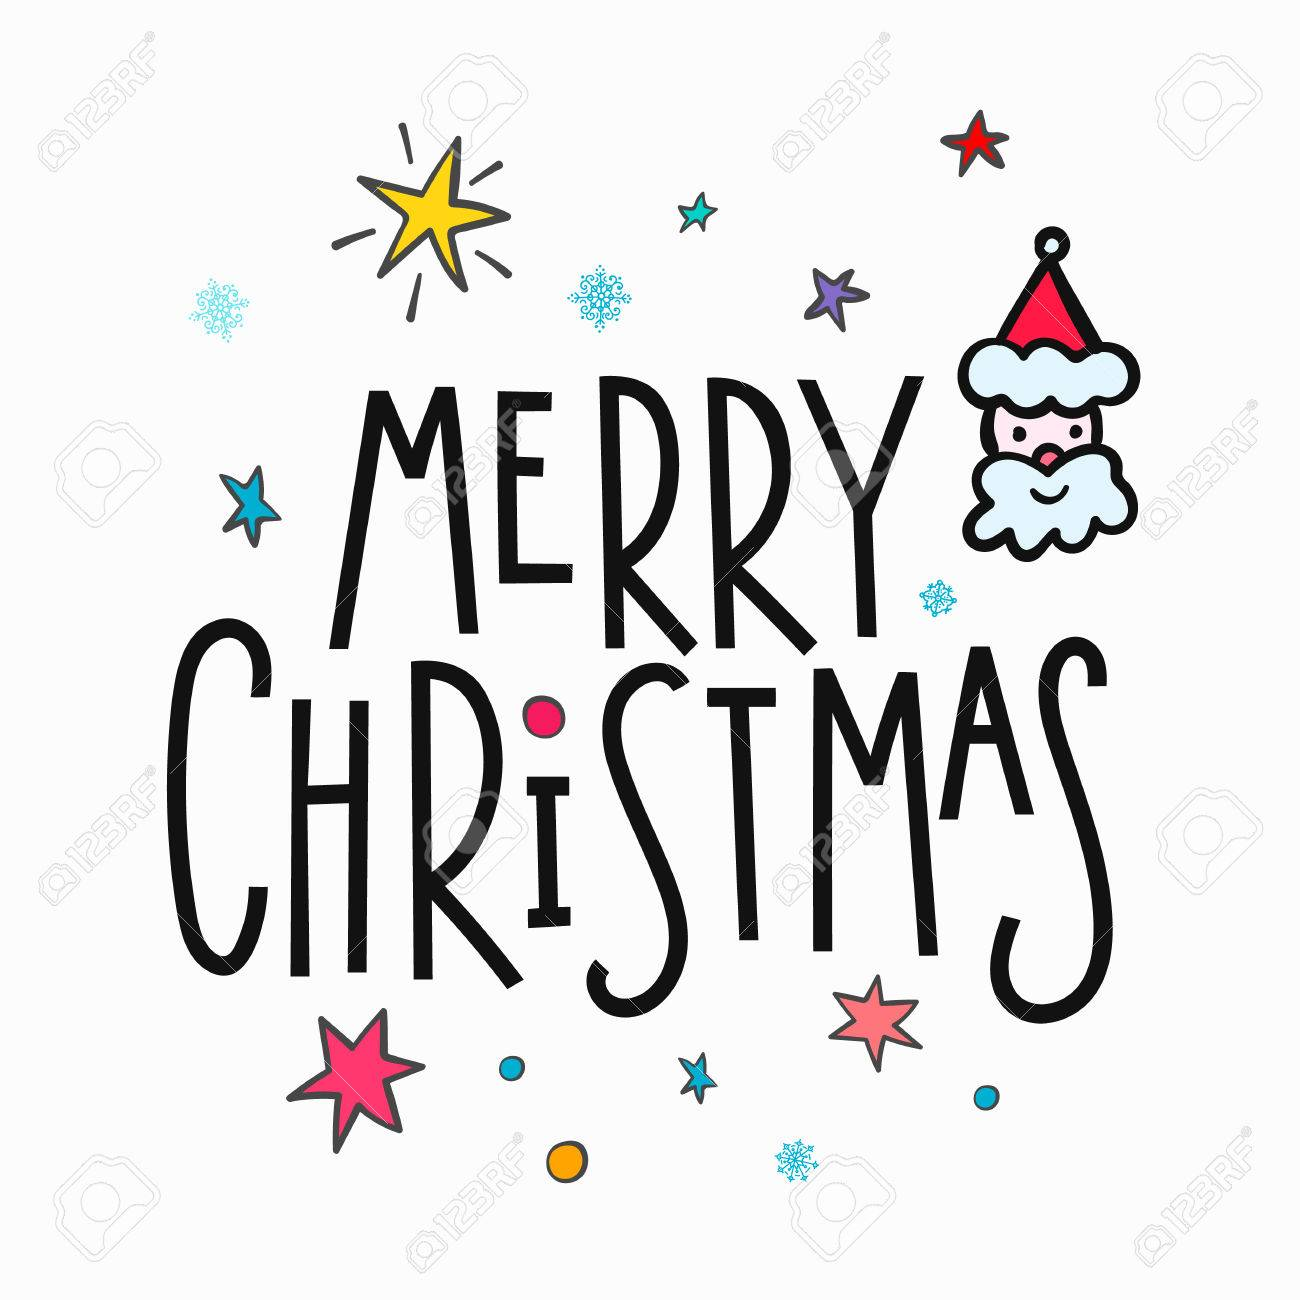 Christmas Graphics Vector.Merry Christmas Happy New Year Simple Lettering Or Calligraphy